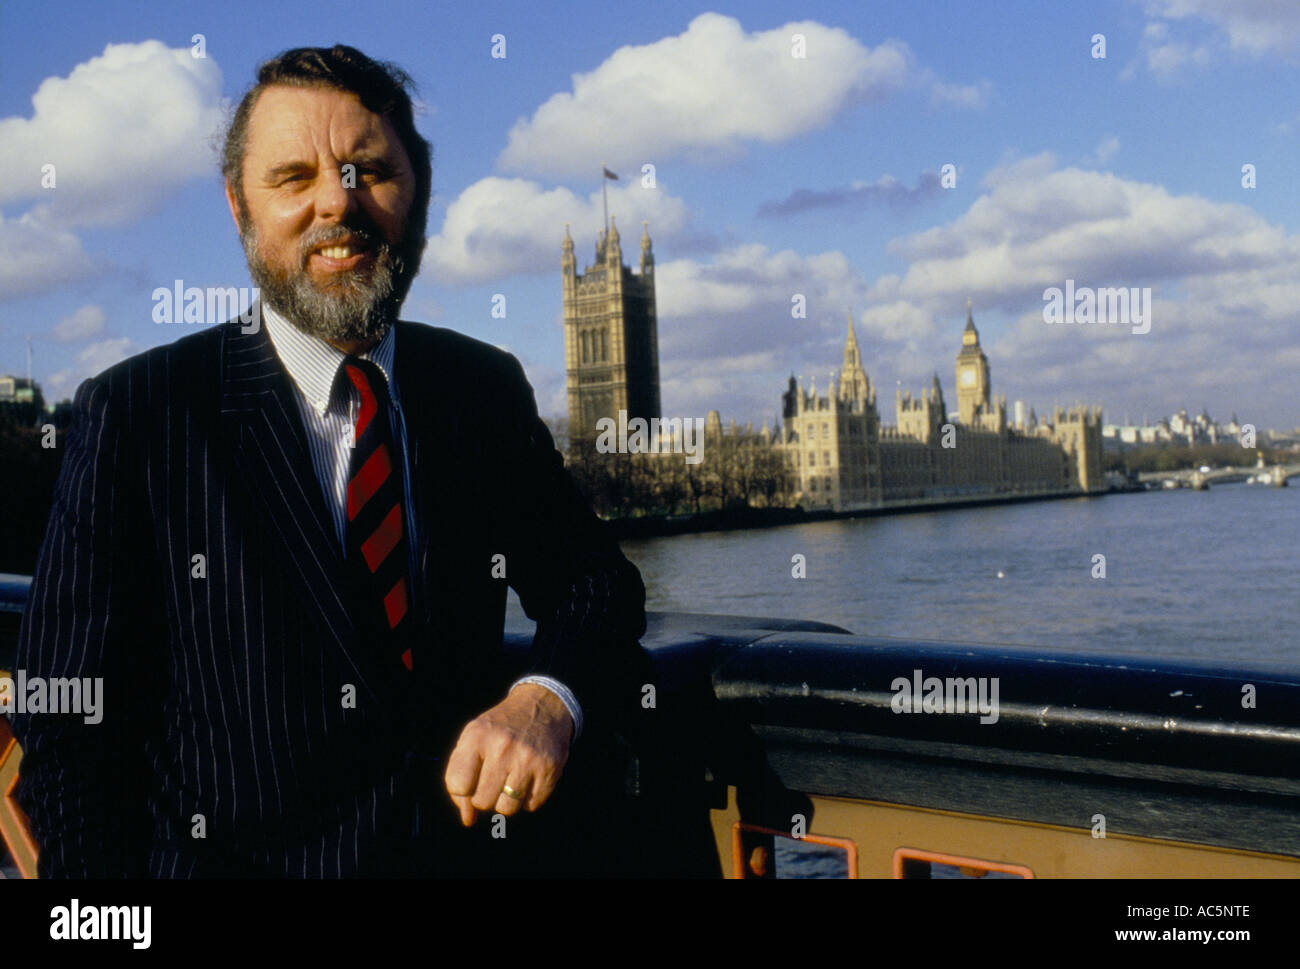 TERRY WAITE STANDS POSING BY THE HOUSES OF PARLIAMENT - Stock Image